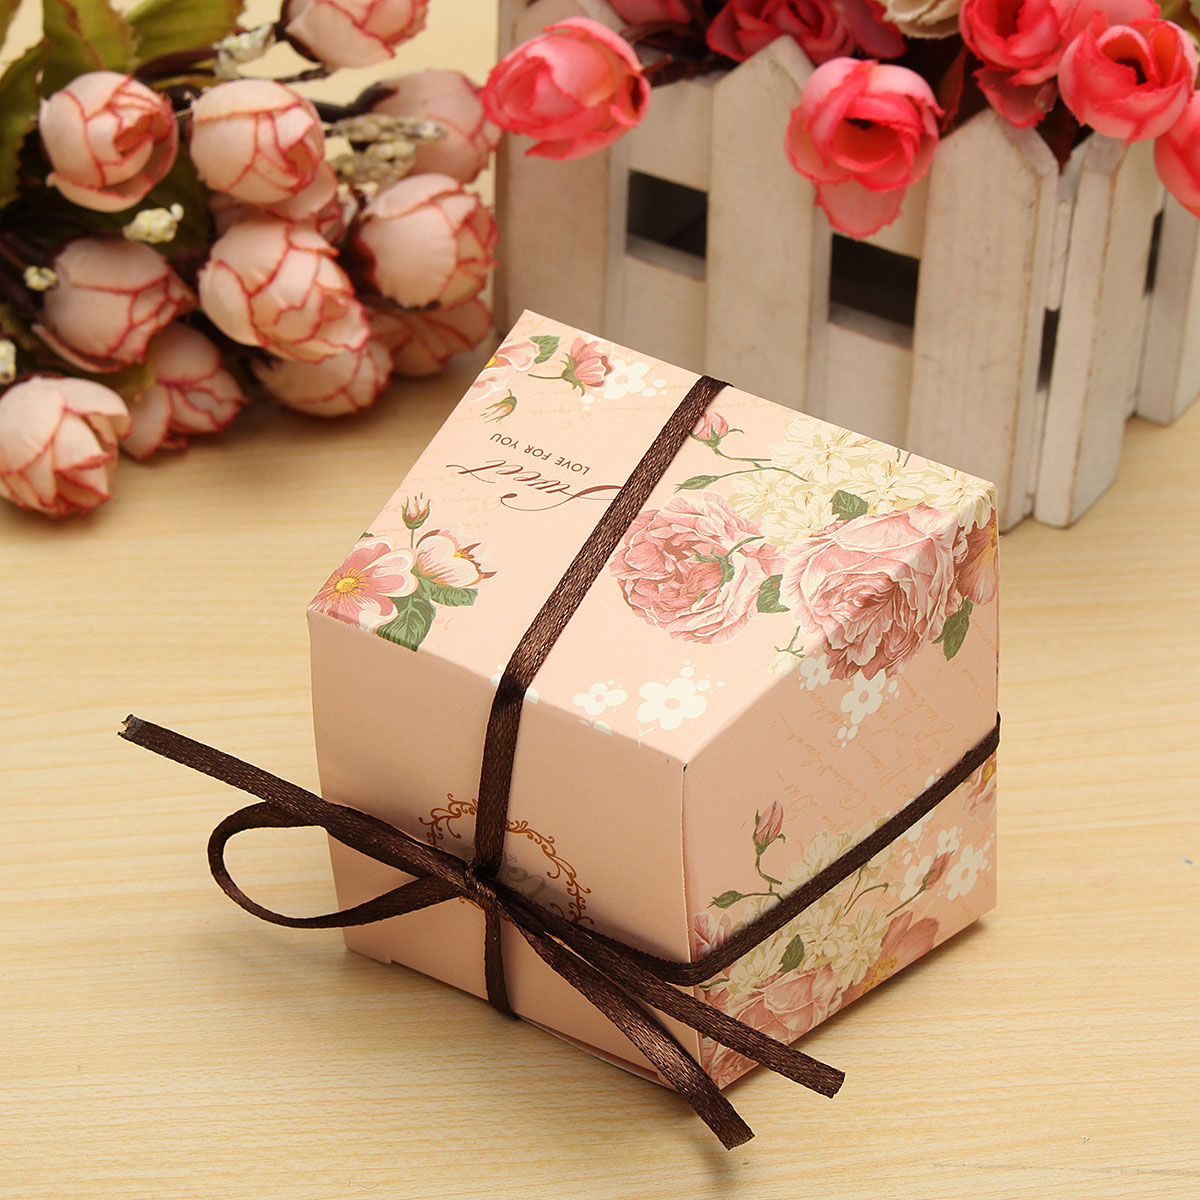 Advantages and Disadvantages of Cardboard Gift Boxes